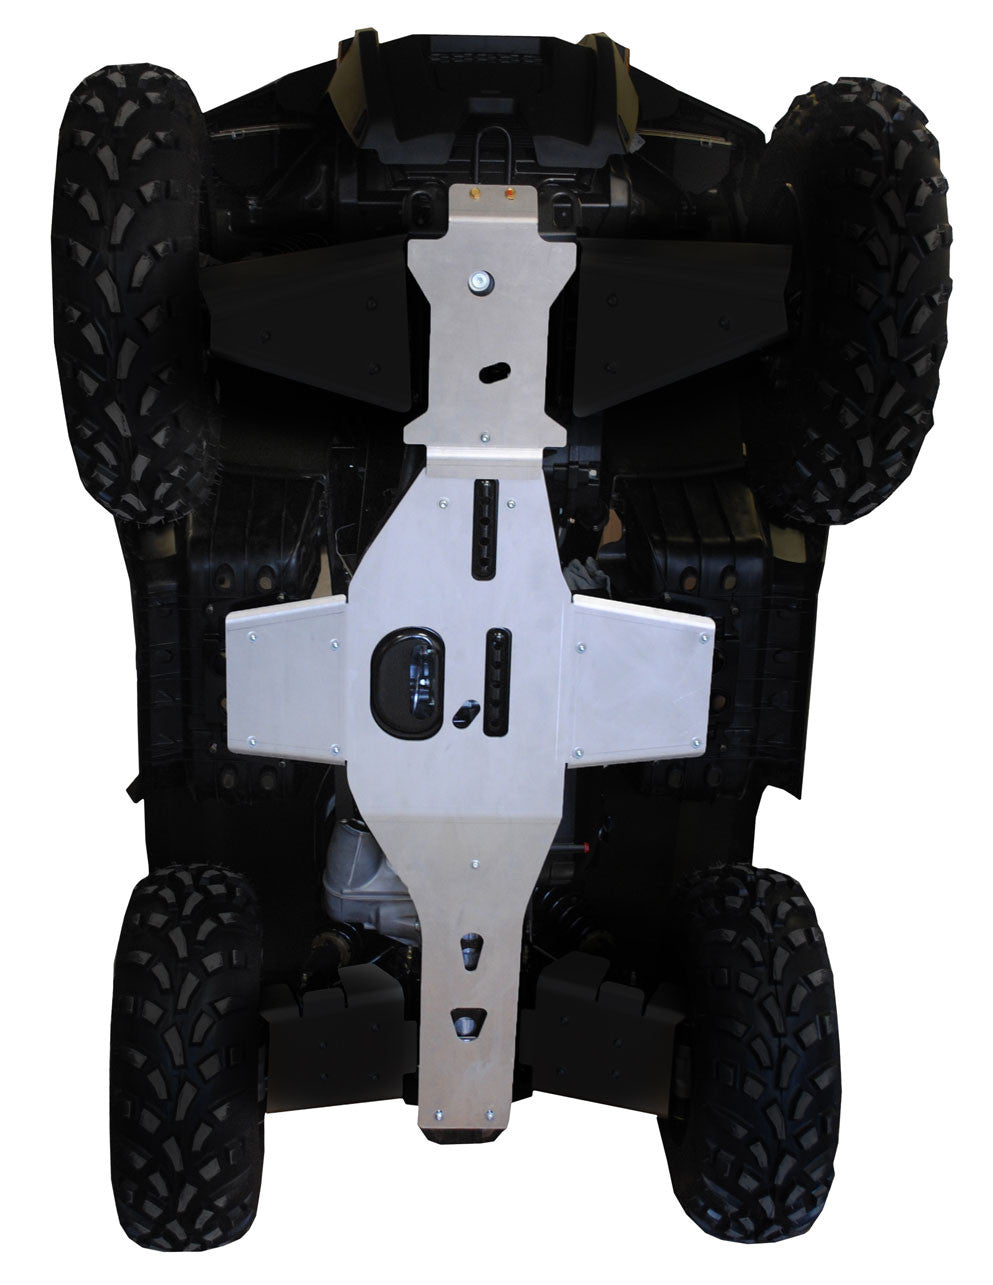 2-Piece Full Frame Skid Plate Set, Polaris Sportsman 800